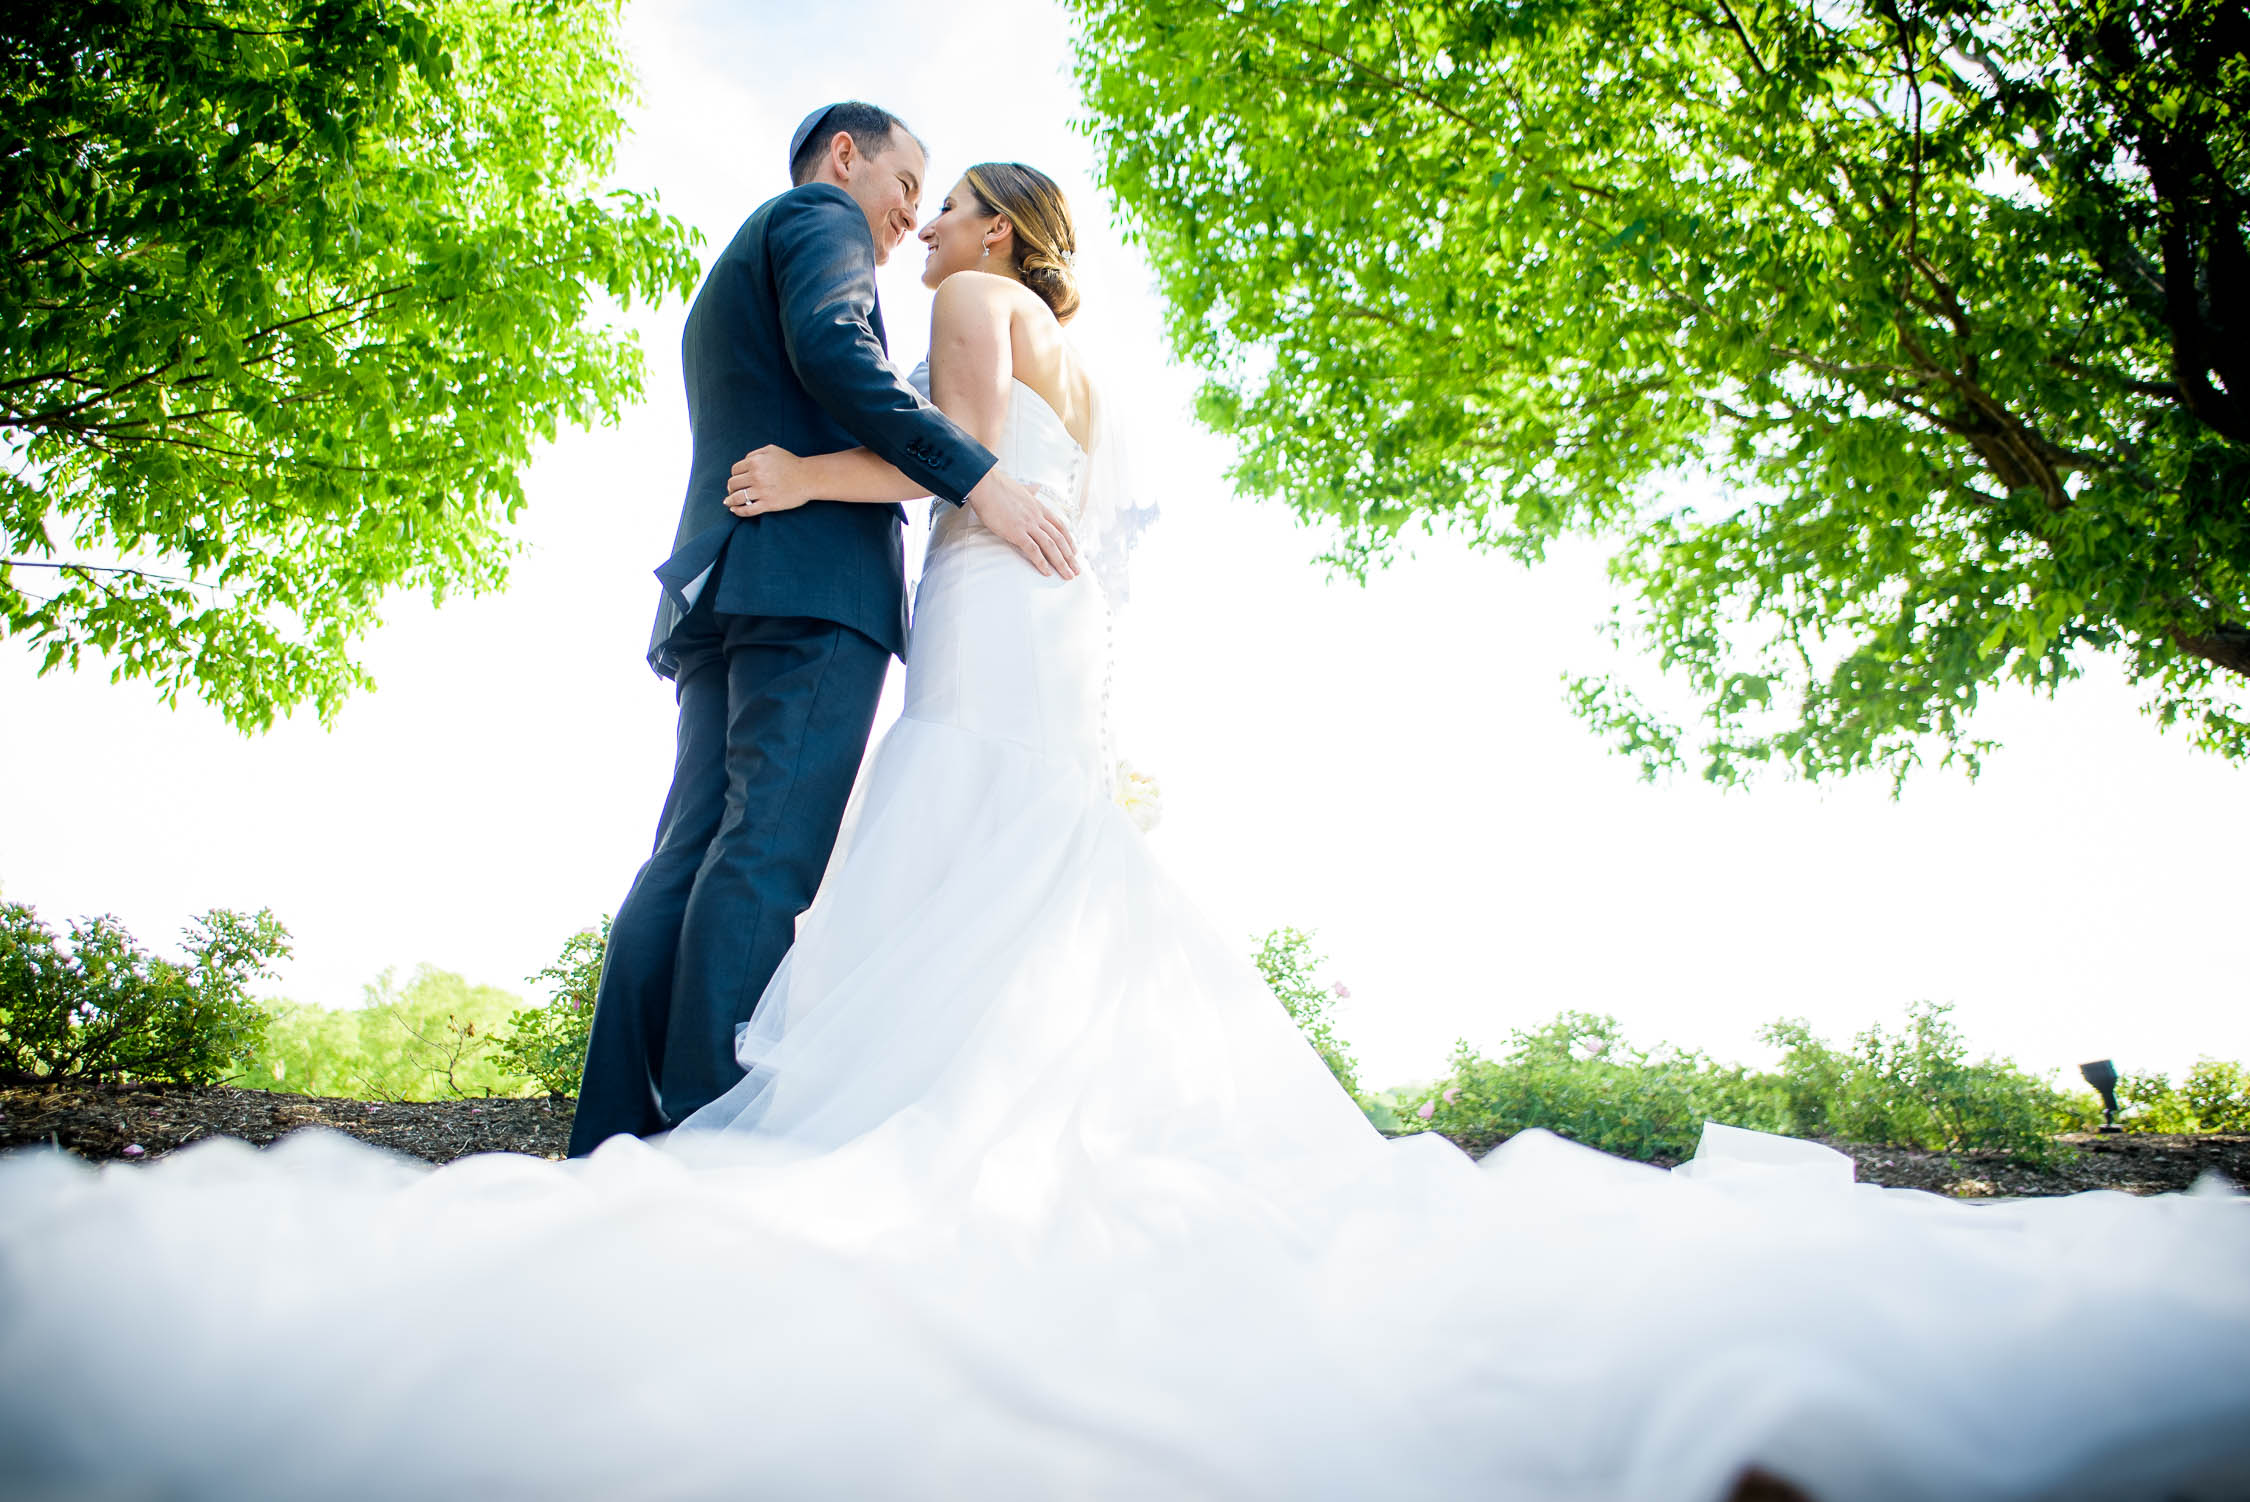 Creative wedding day portrait at Independence Grove in Libertyville.